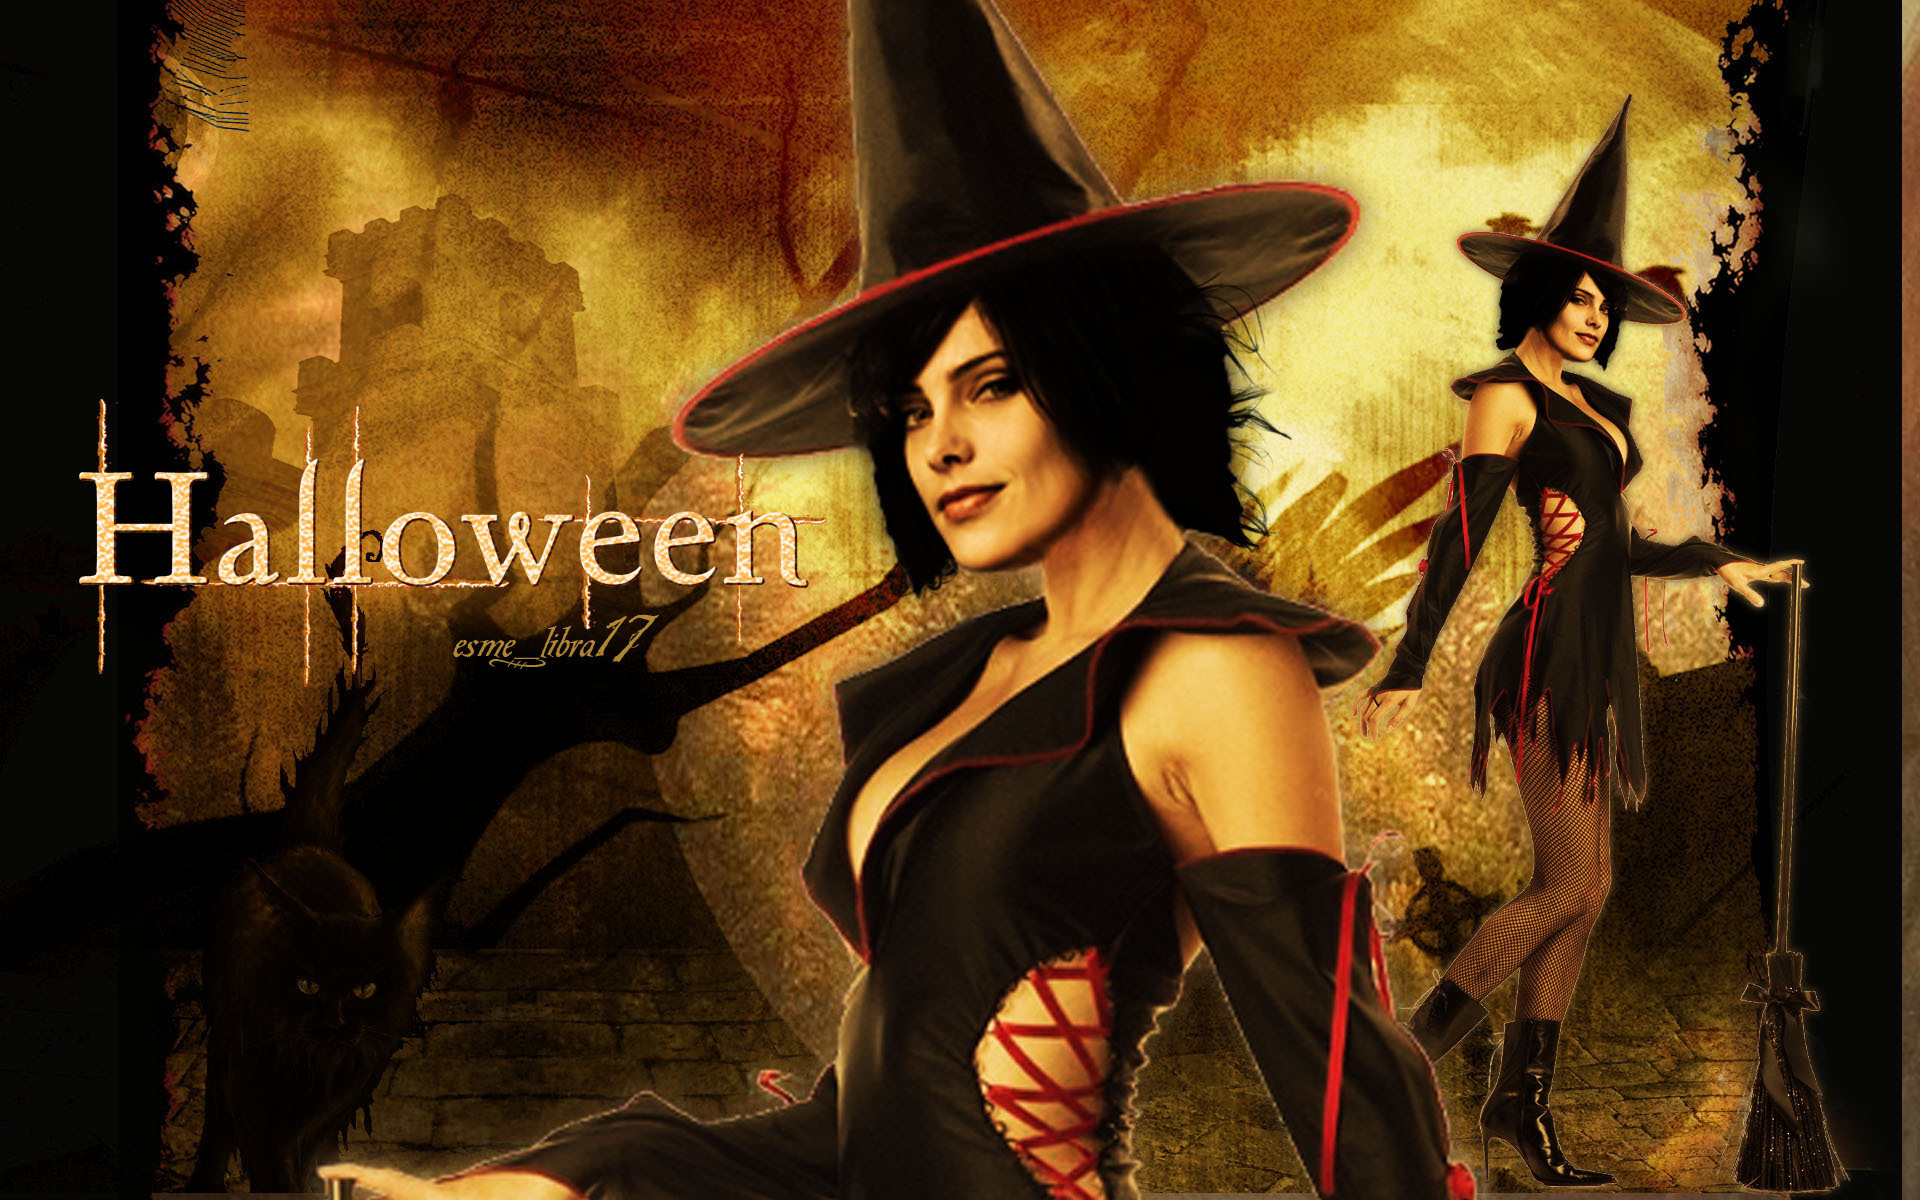 happy halloween - twilight cast - twilight-series wallpaper